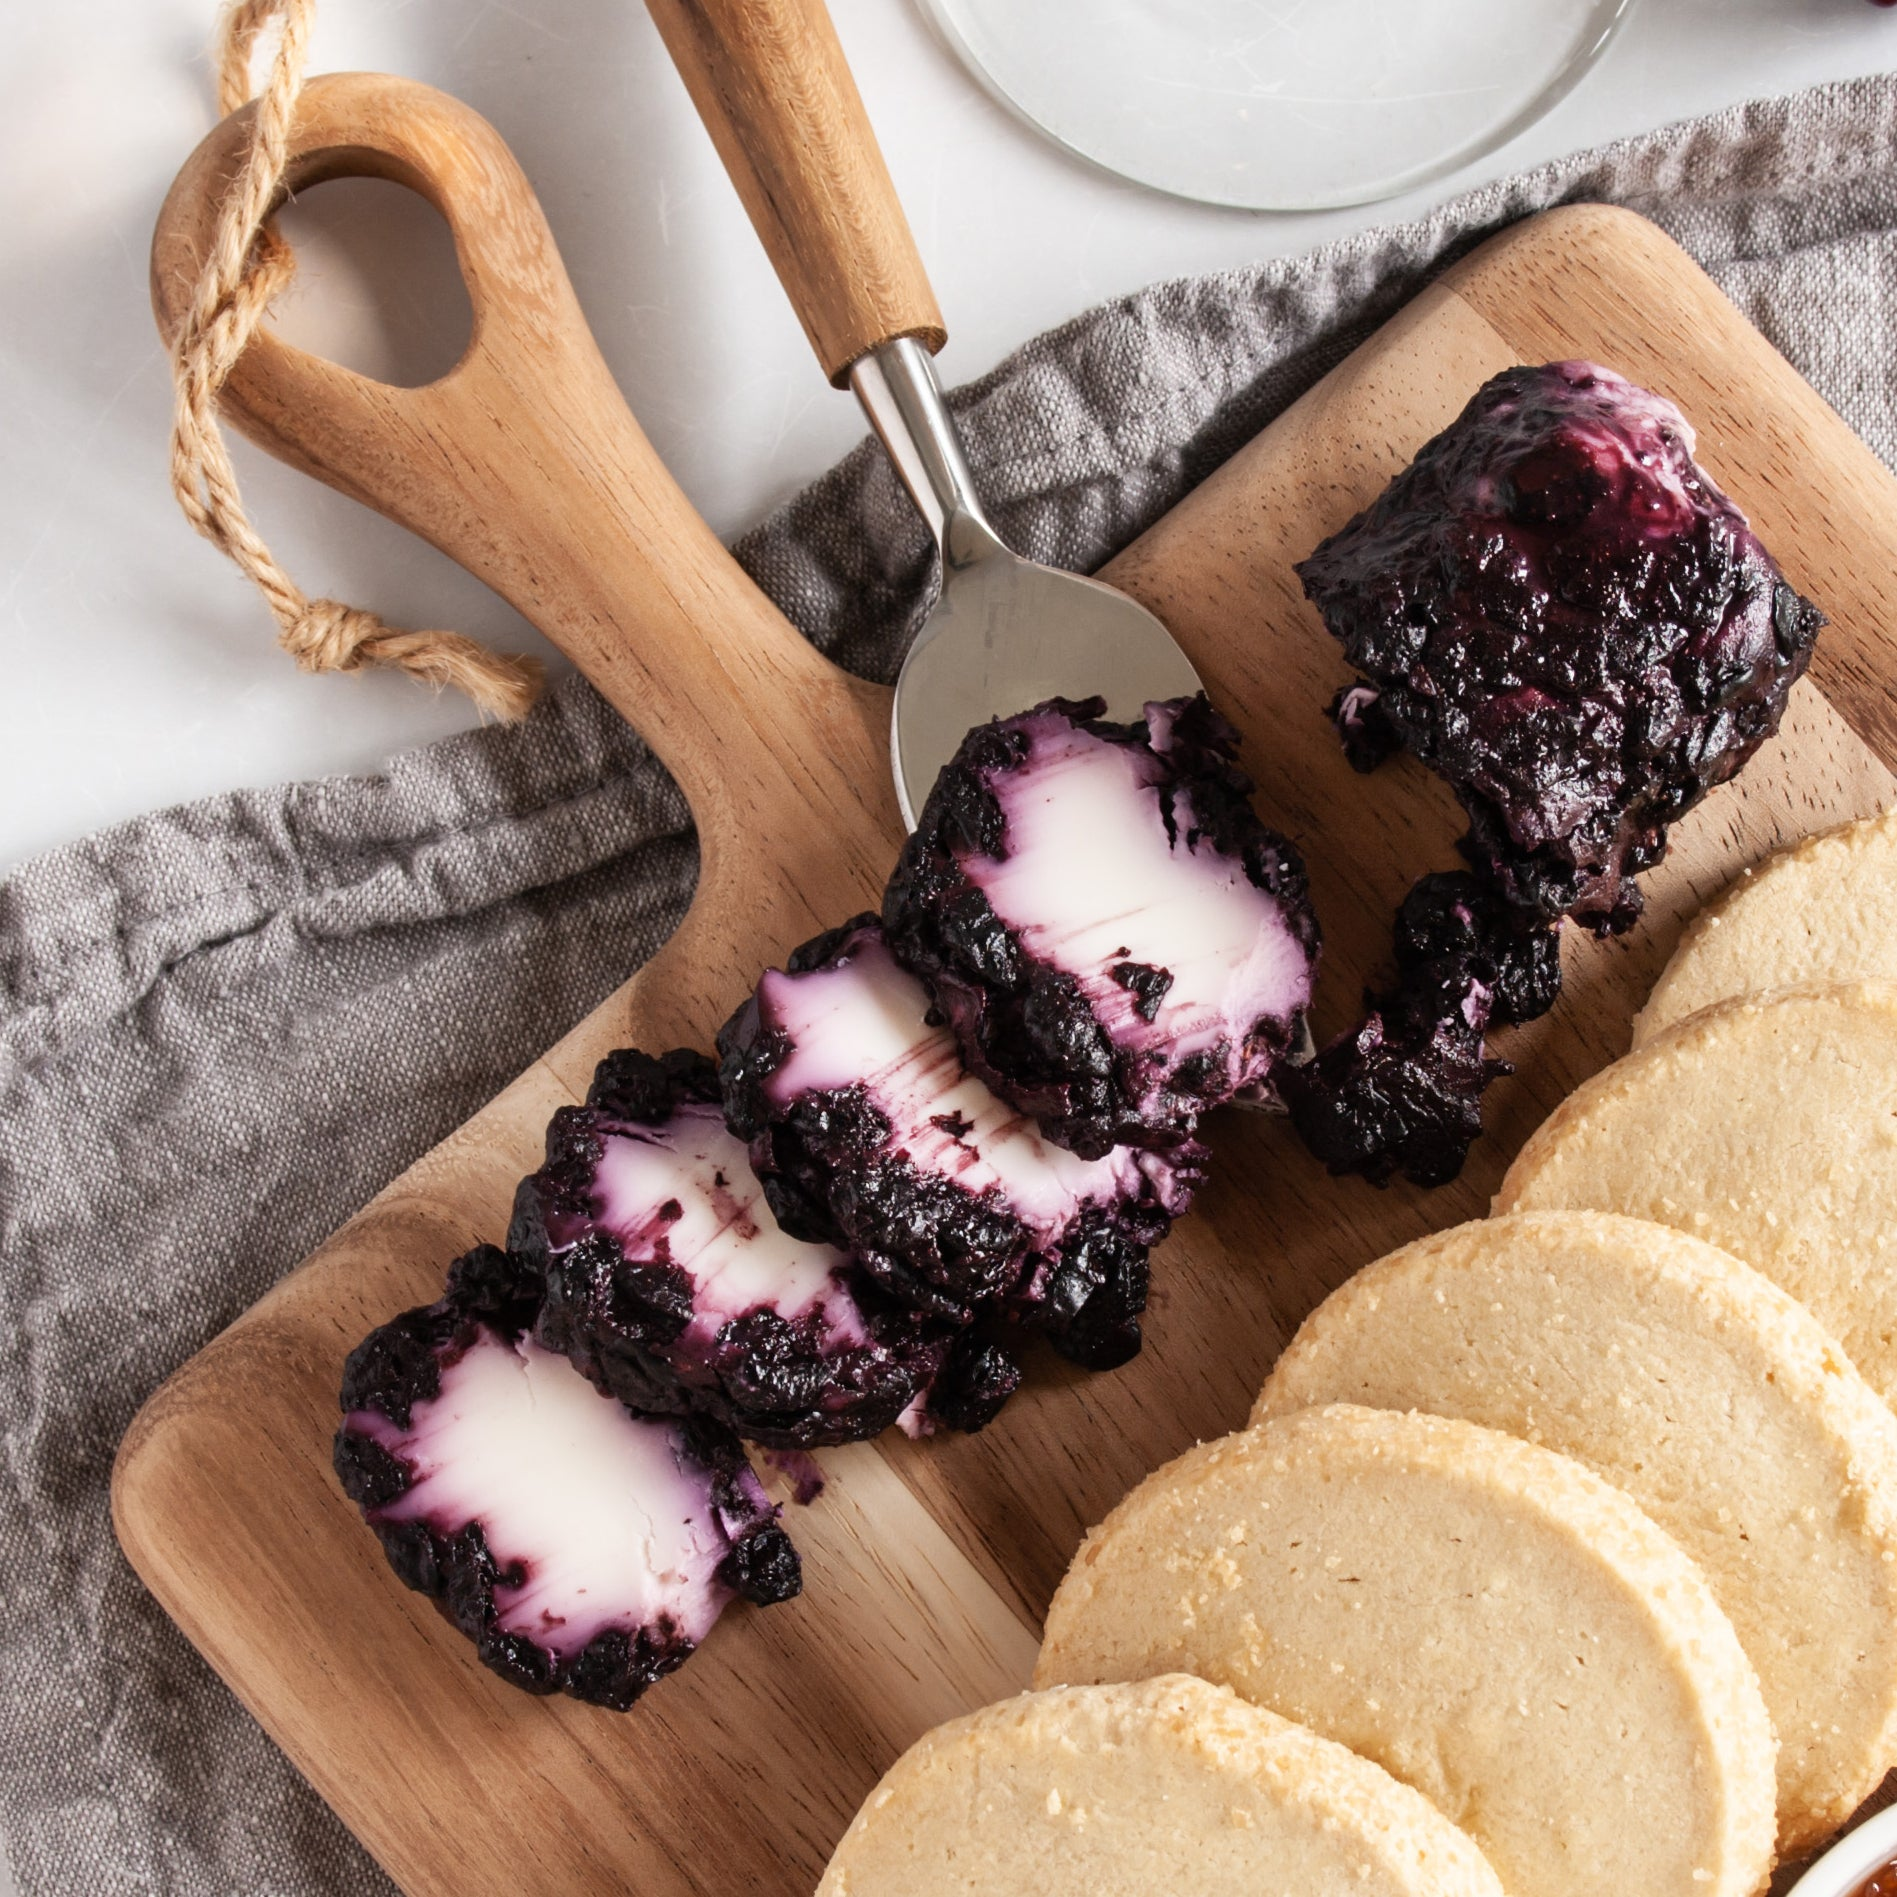 Blueberry Chevre with Cinnamon_Celebrity_Cheese